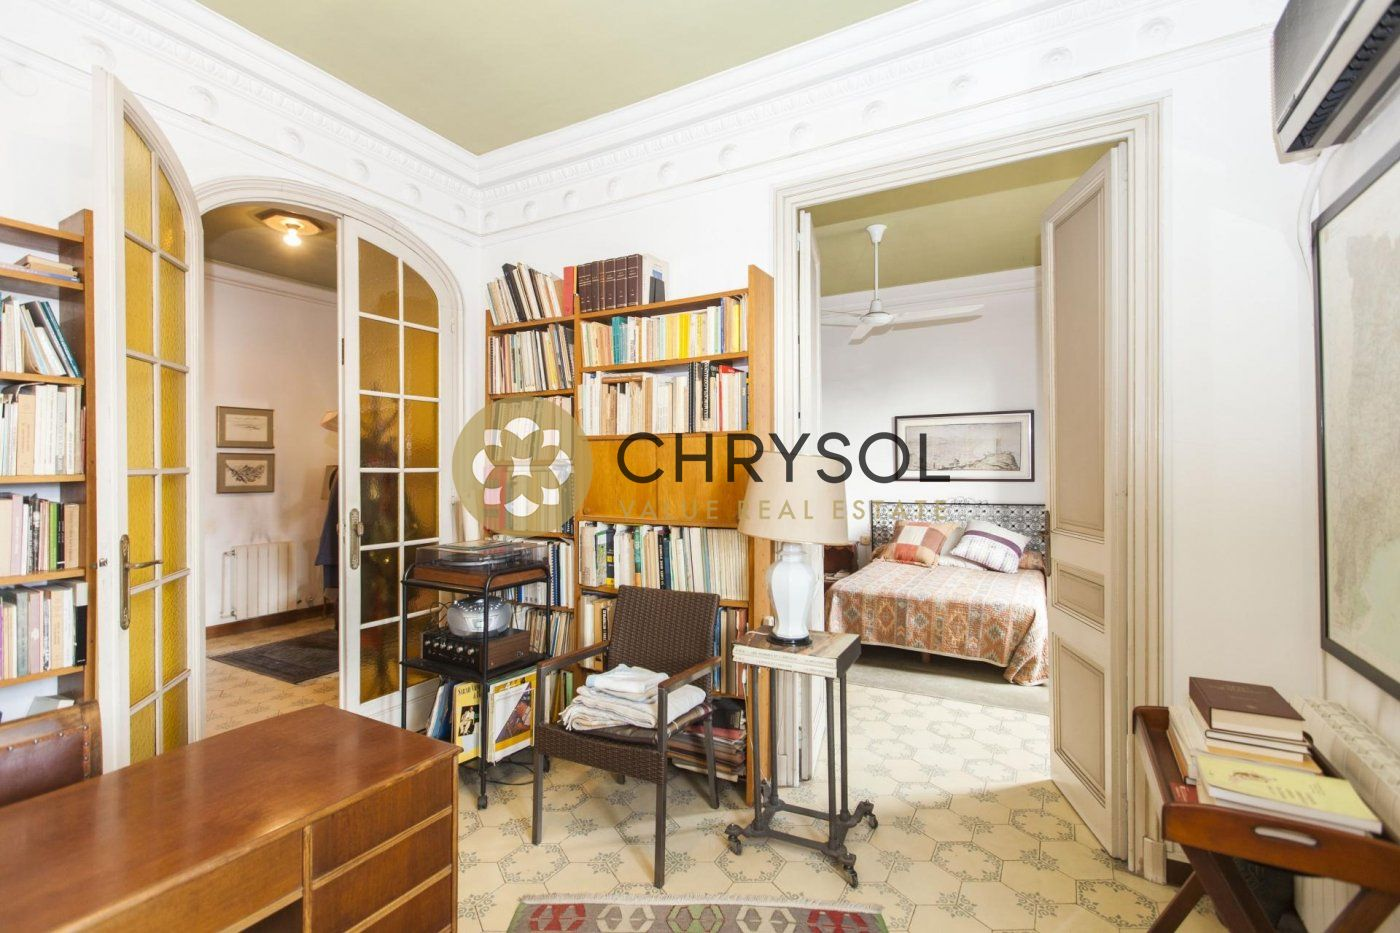 Photogallery - 22 - Chrysol Value